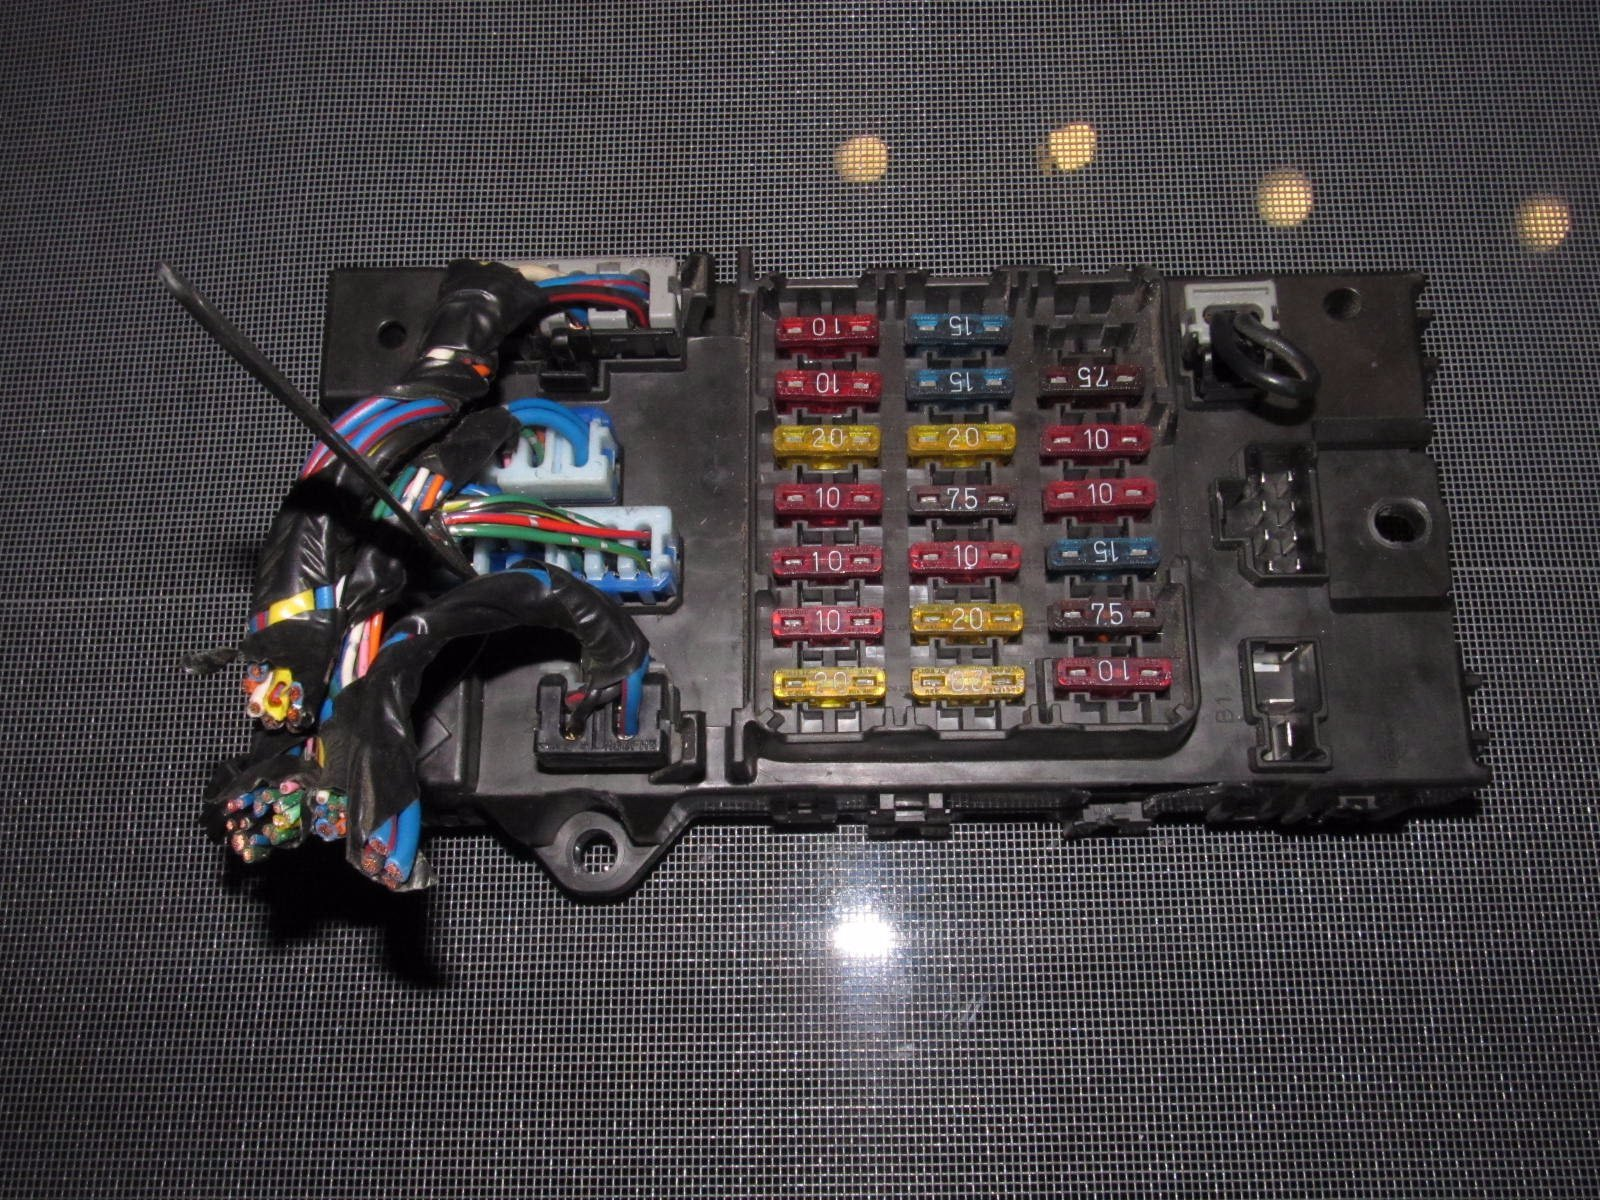 91 na 300zx fuse box wiring diagram will be a thing u2022 rh exploreandmore co uk 1990 Nissan 300ZX TT 300ZX BOV